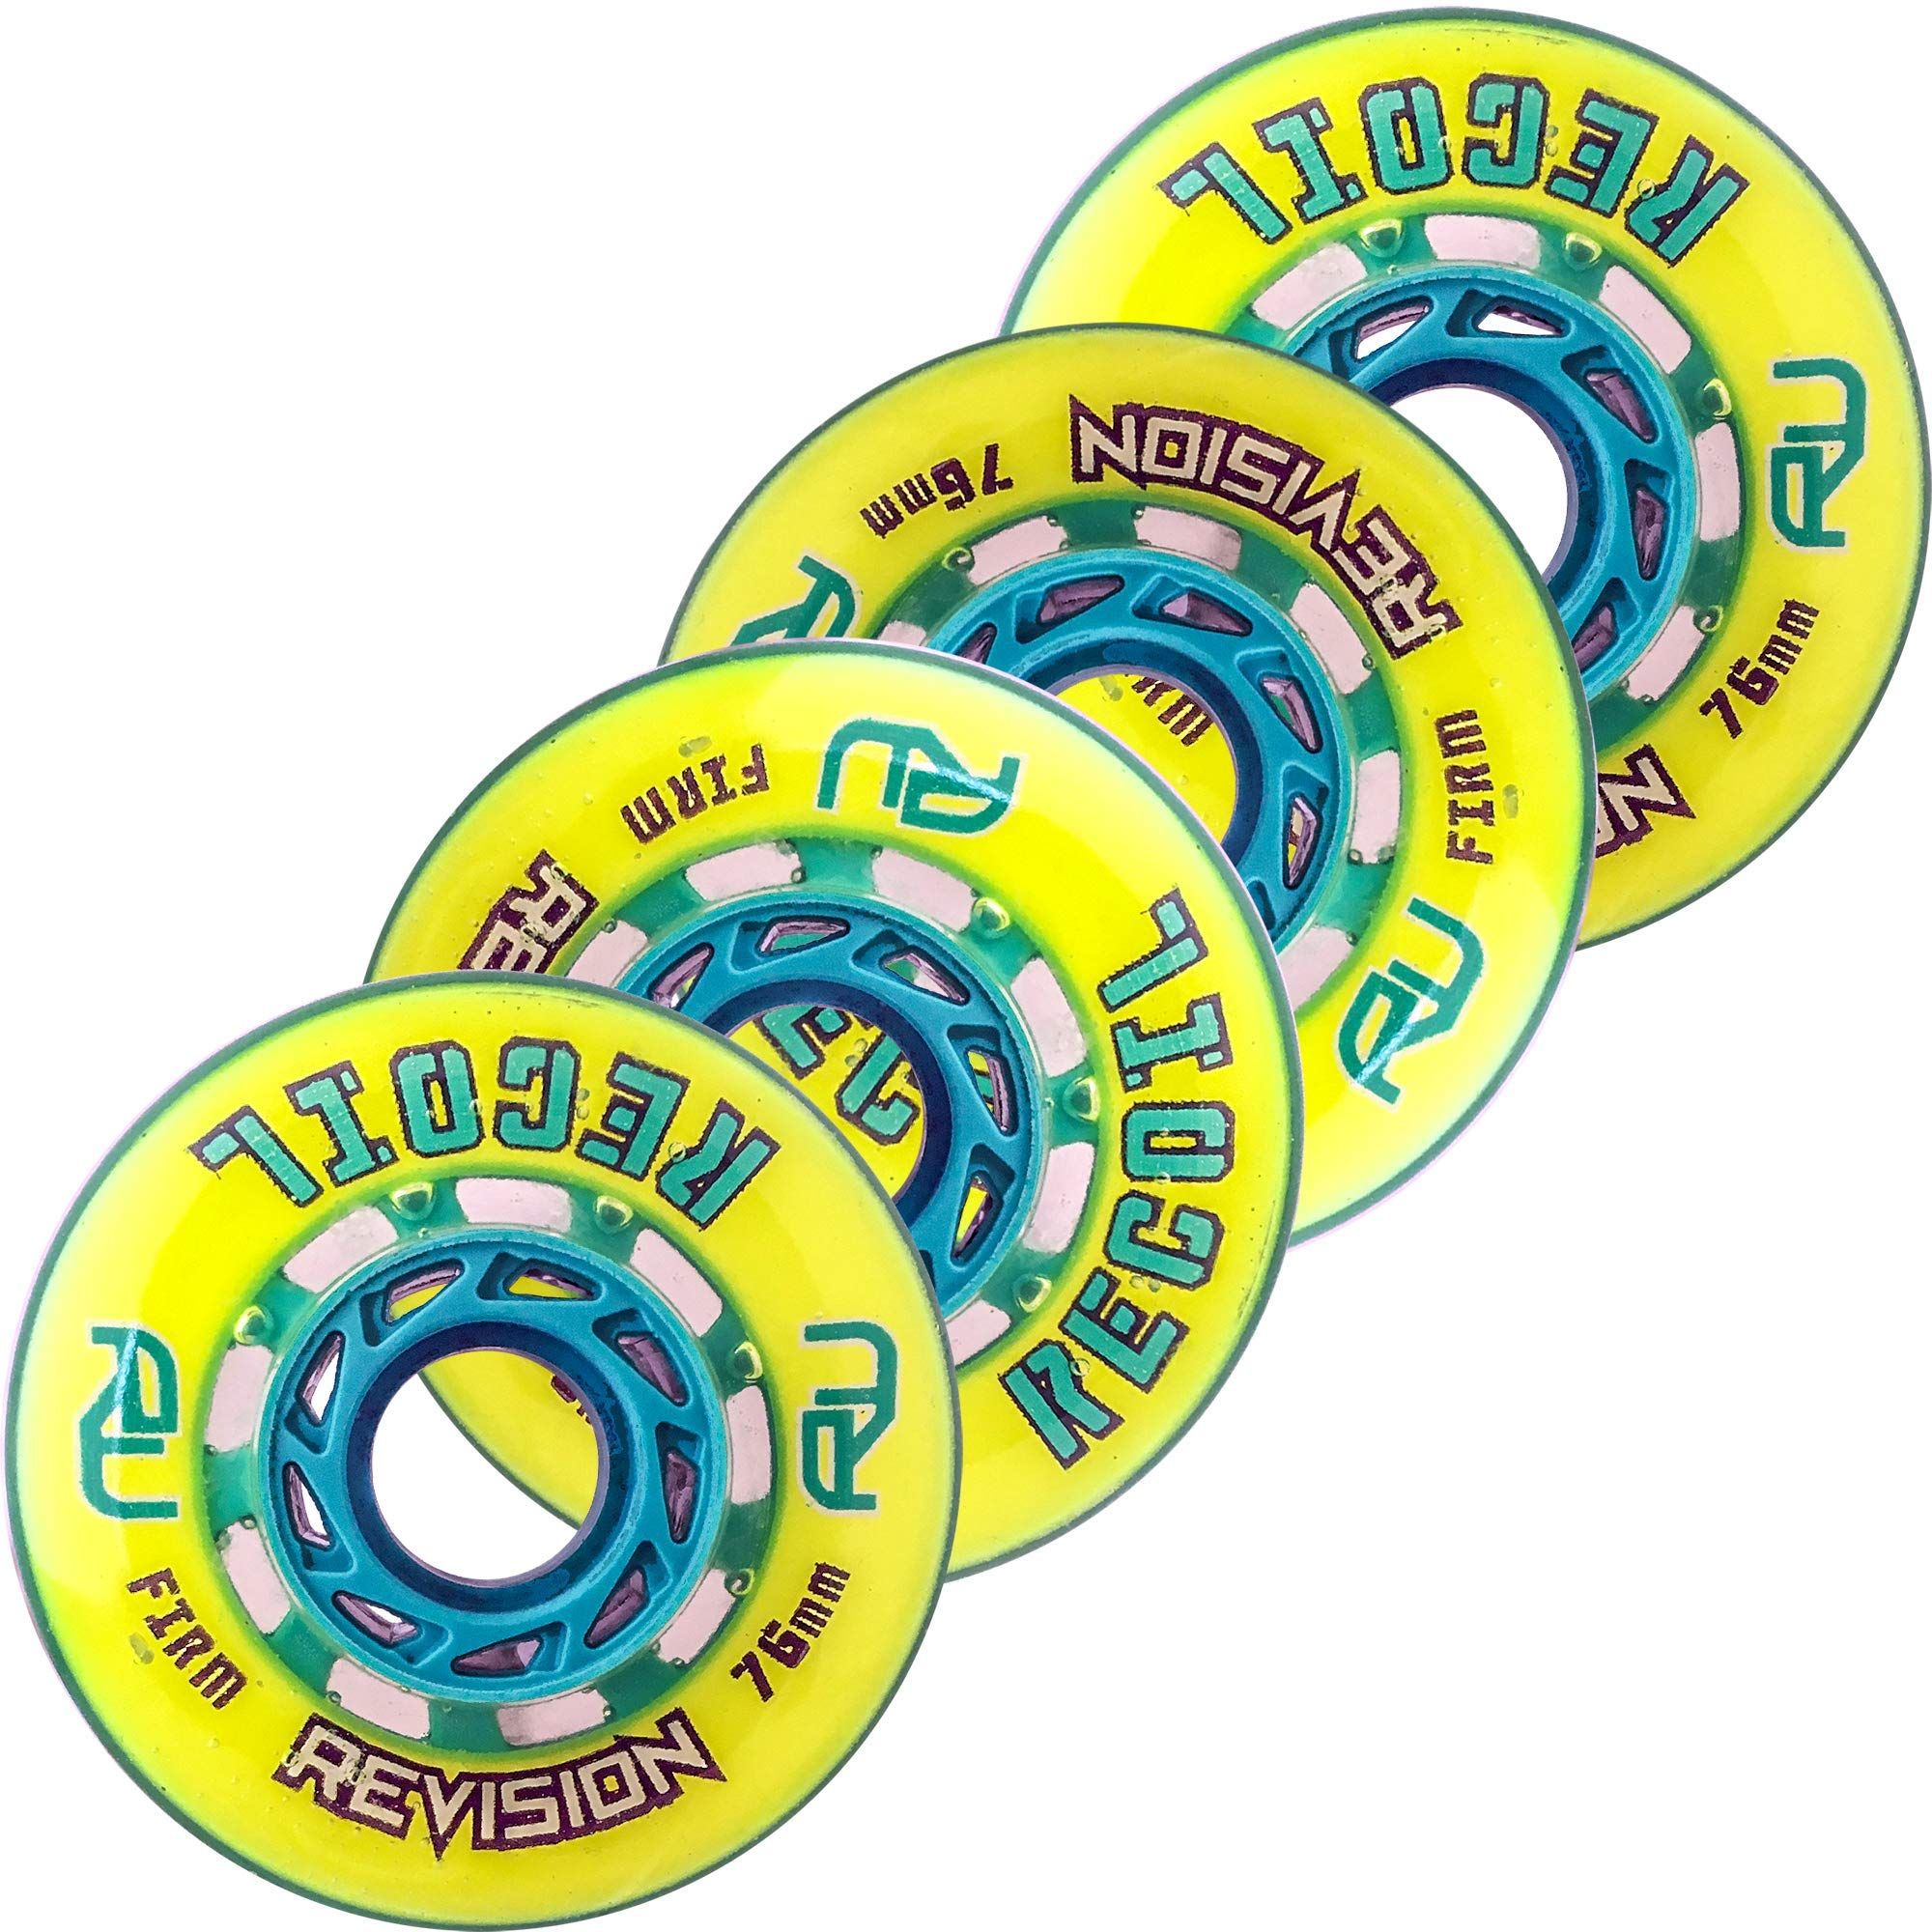 Revision Recoil Indoor Inline Roller Hockey Wheel - 74A - 76 Firm 4 Pack - Yellow & Teal by Revision Hockey